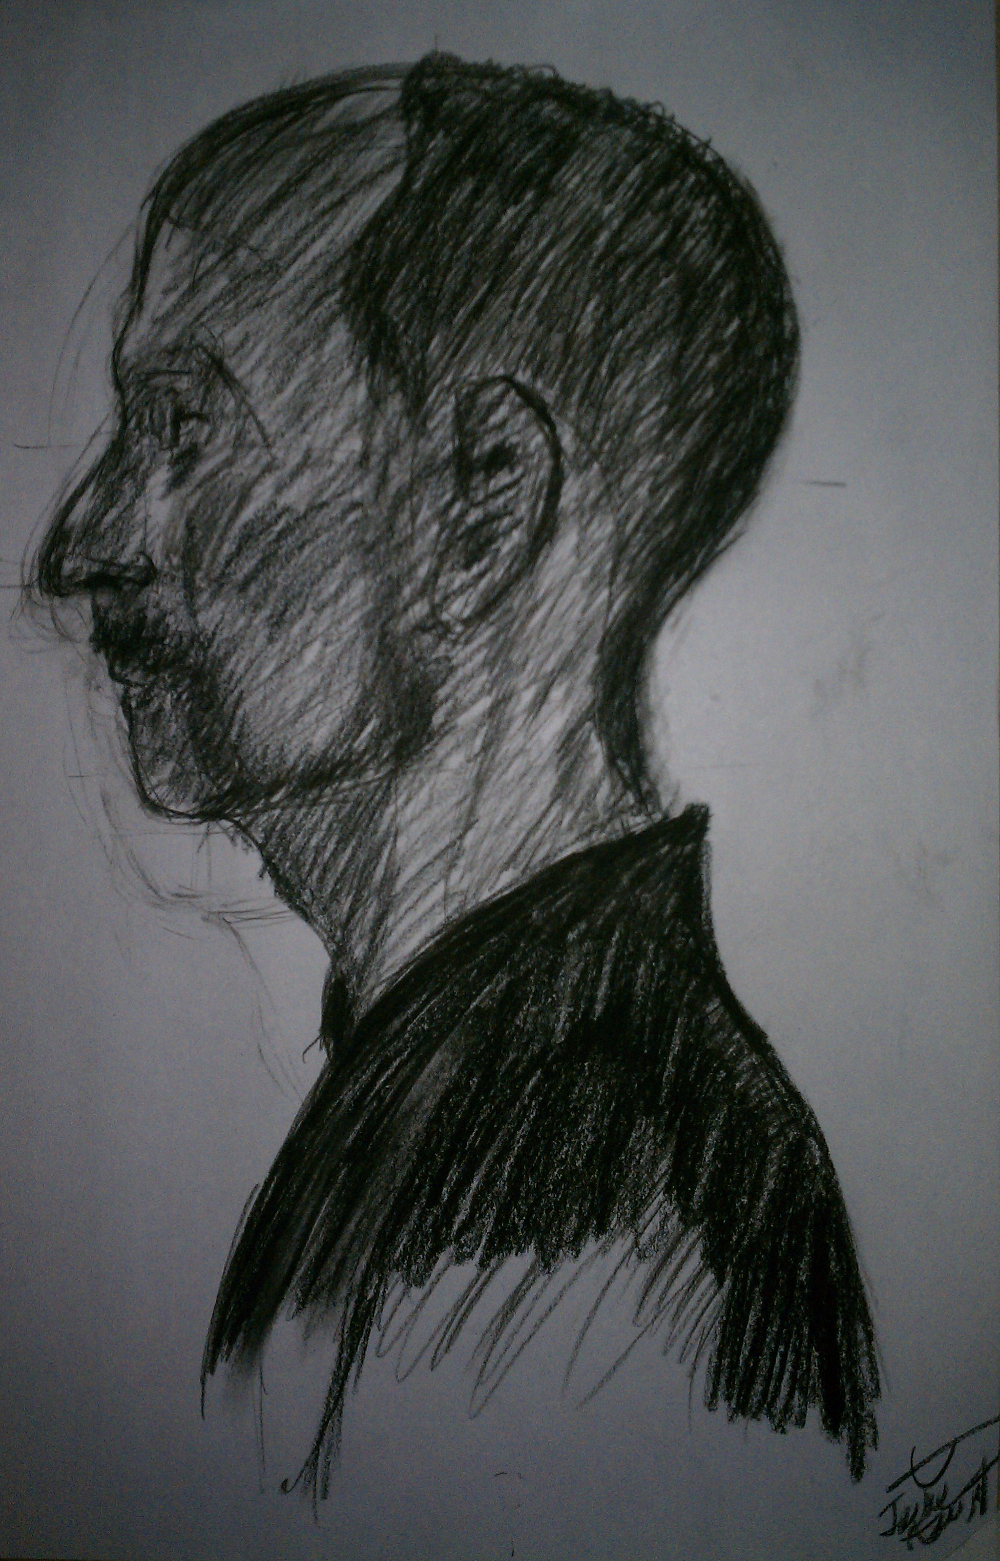 Profile of a Man's Head